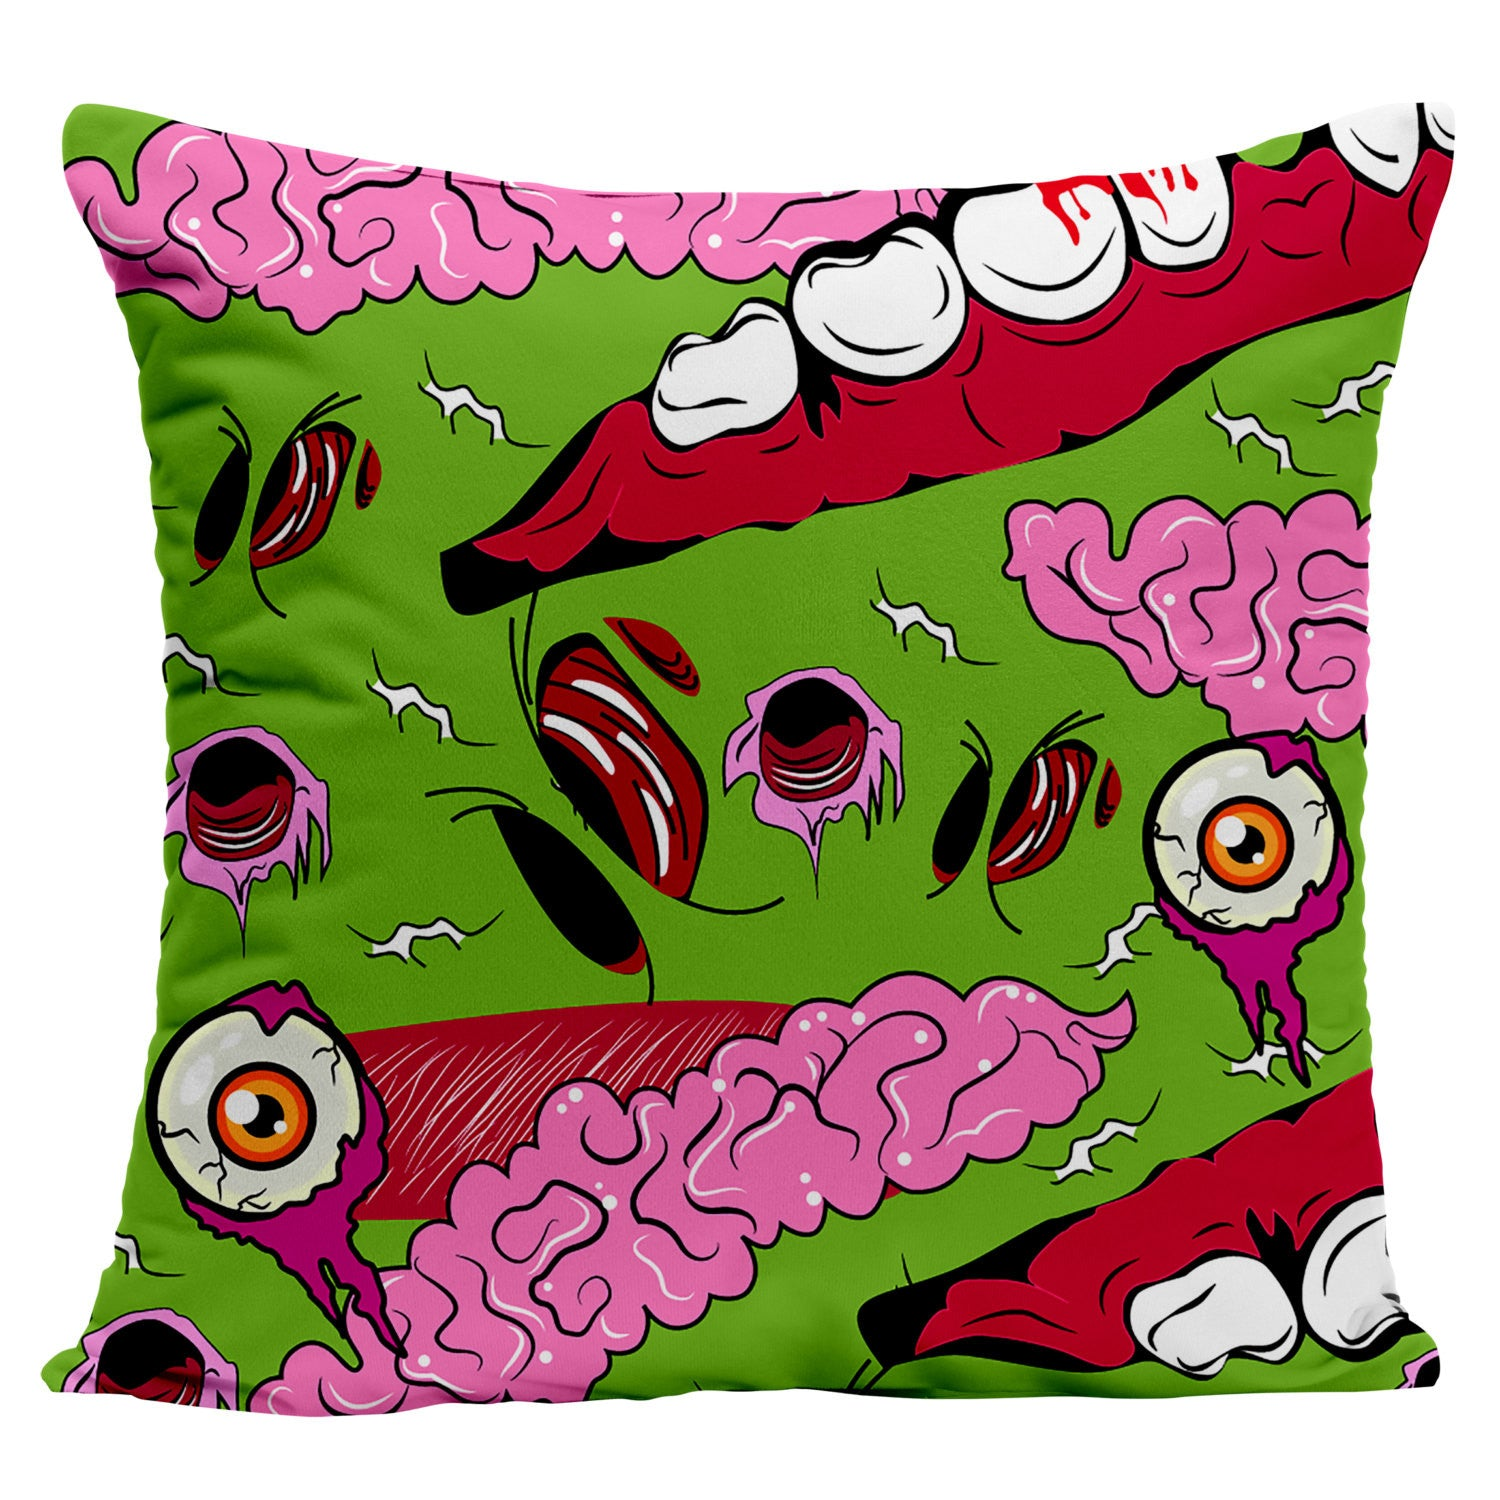 Zombies Pillow - Shweeet